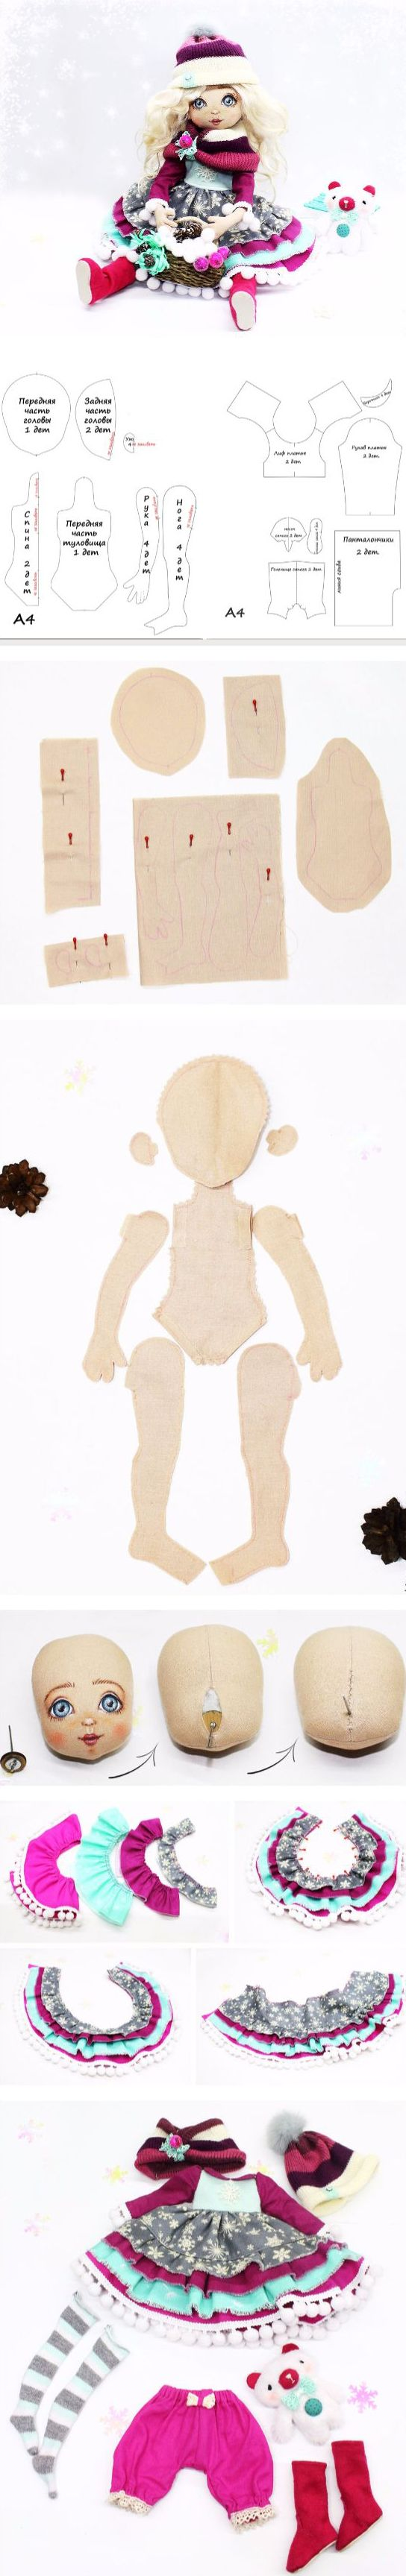 How to make adorable fabric doll wirh winter outfit. Click on image to see step-by-step tutorial